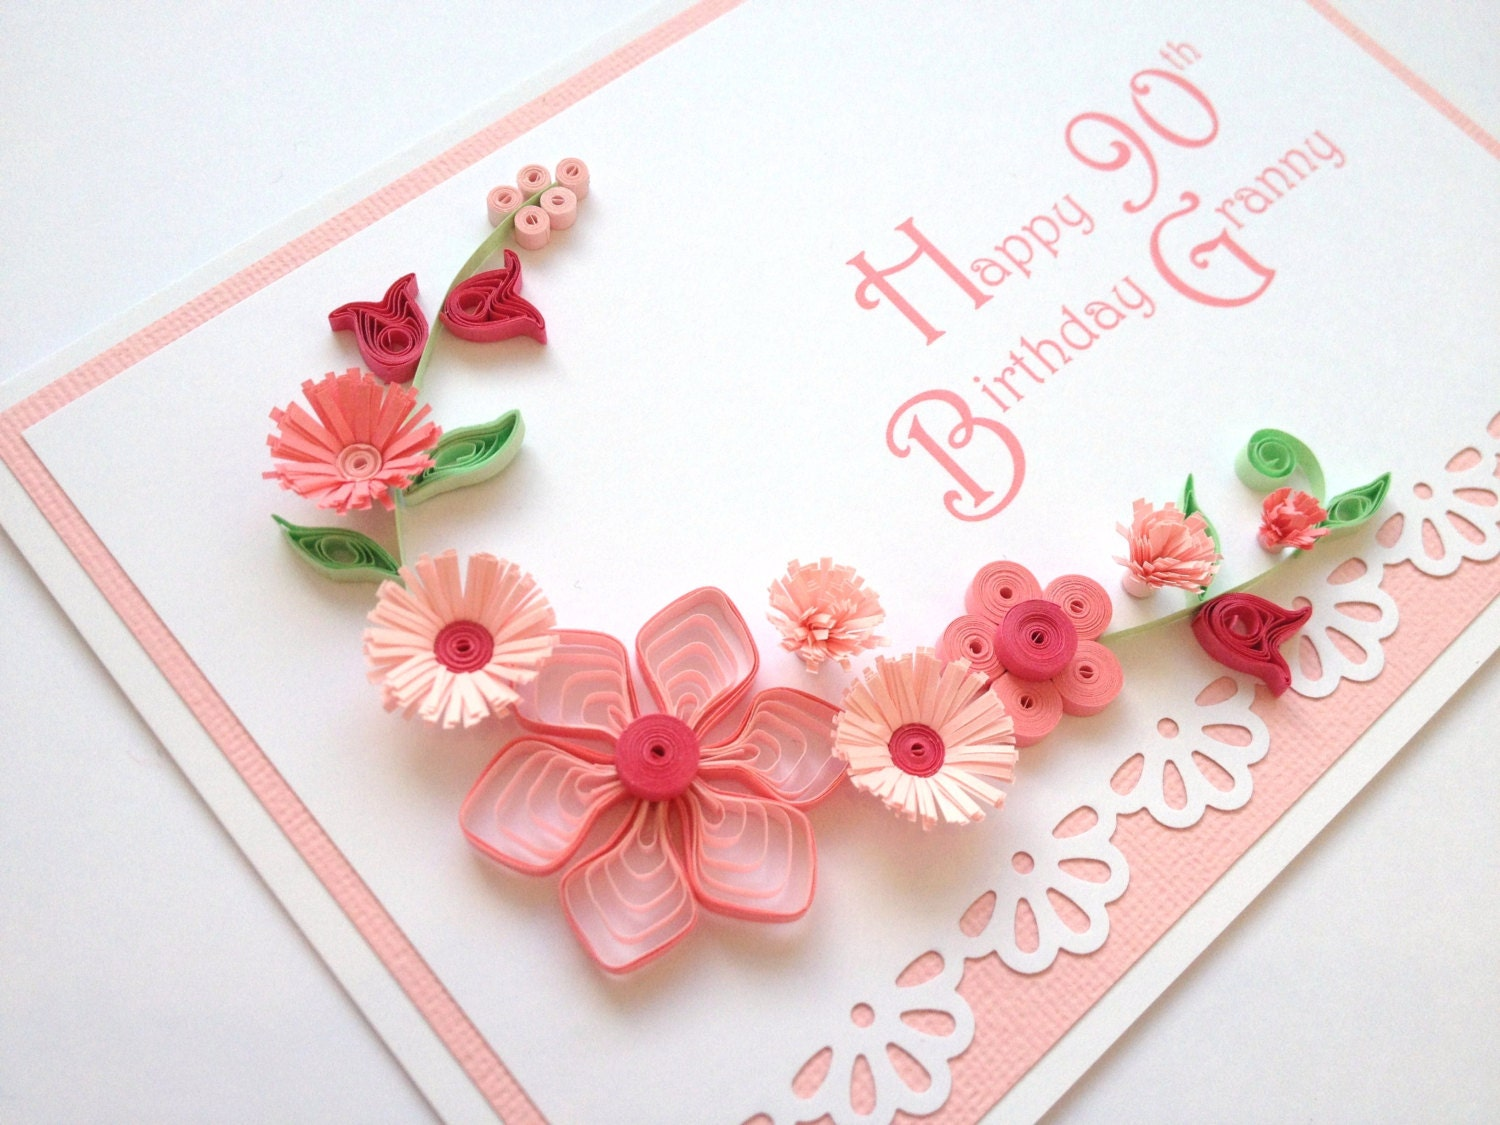 Paper Quilling 90th Birthday Card Quilled Handmade By Joscinta